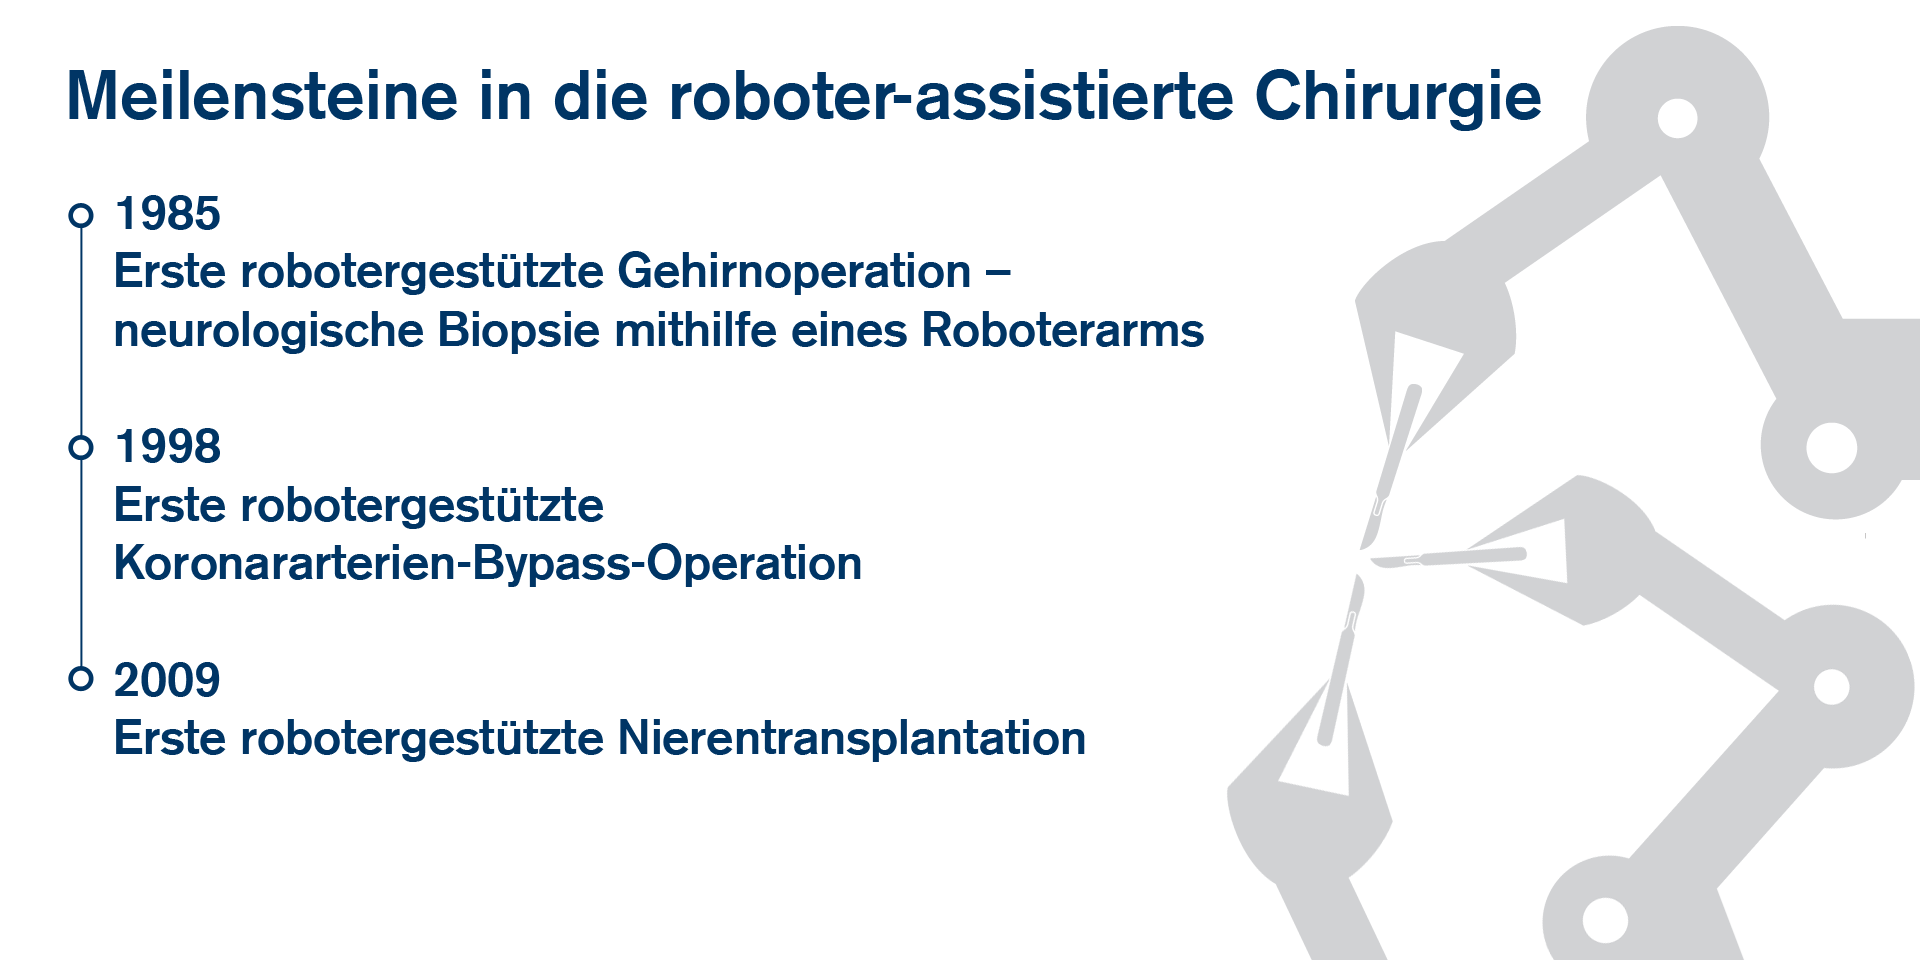 roboter-assistierte Chirurgie